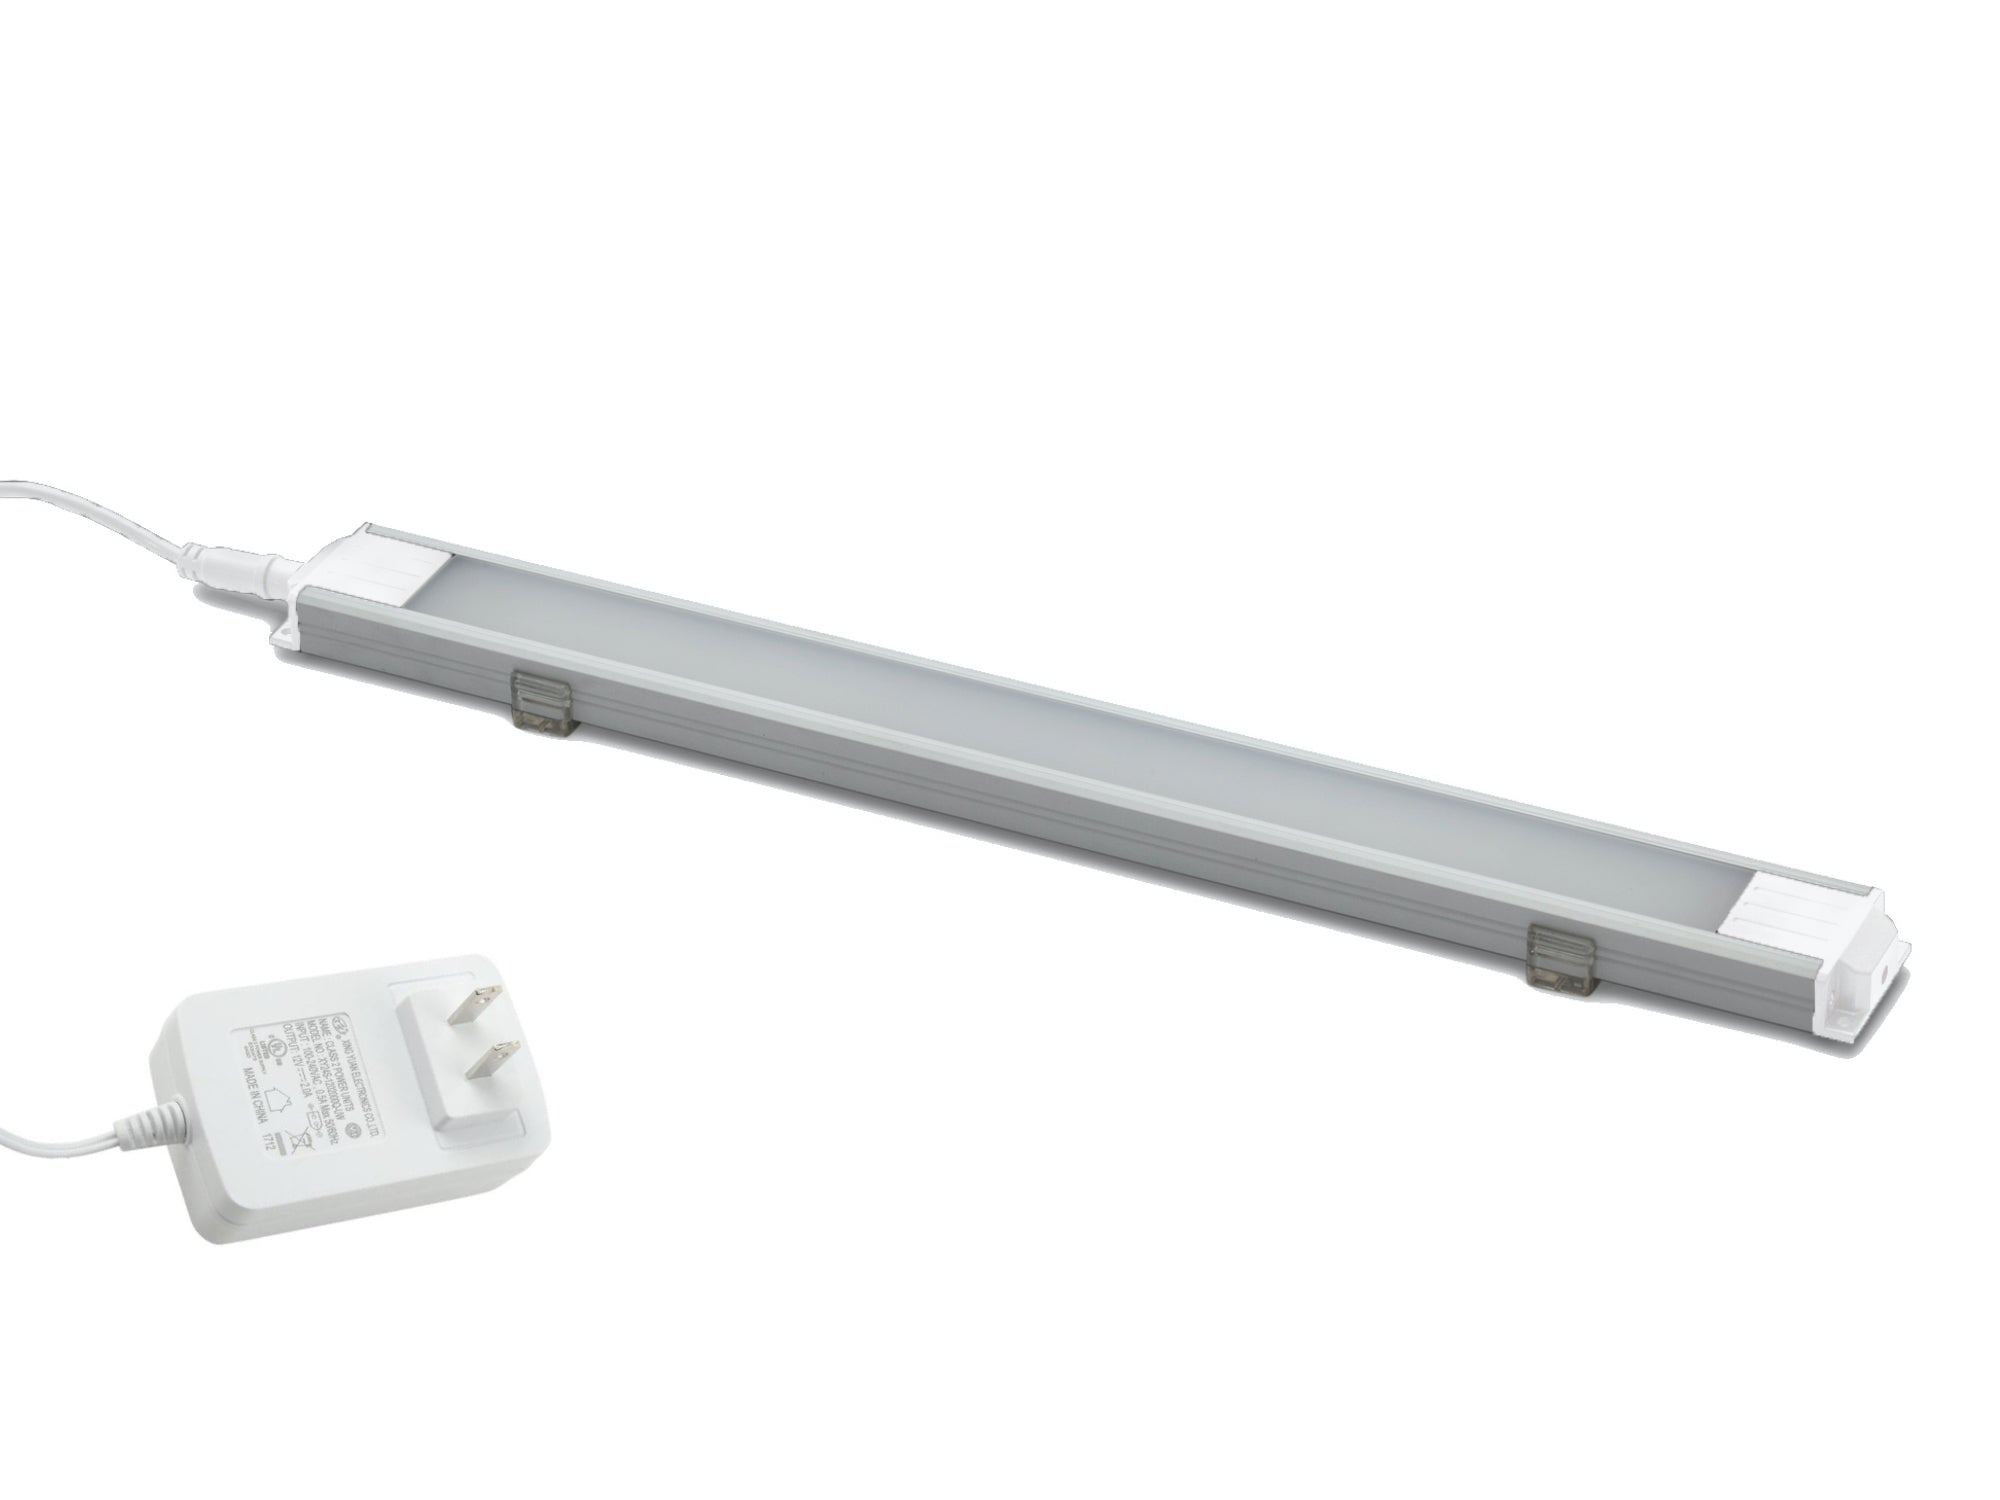 4000K LED Lights (1 x LED with Adapters, 2 x LED with Connector Cable)